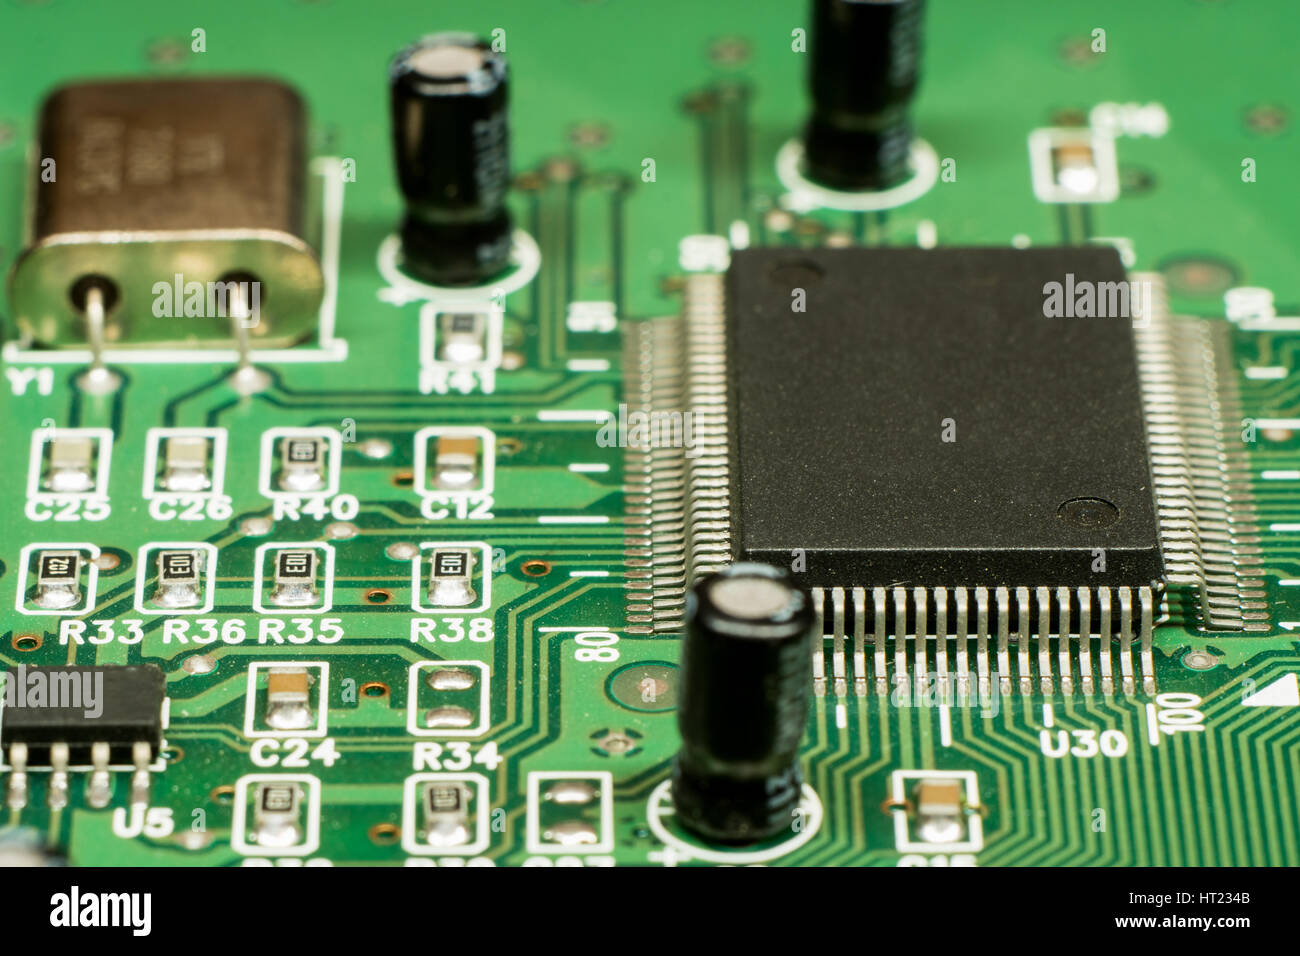 Smd Printed Electronic Circuit Board With Micro Controller And Stock Crystal Oscillator Circuits